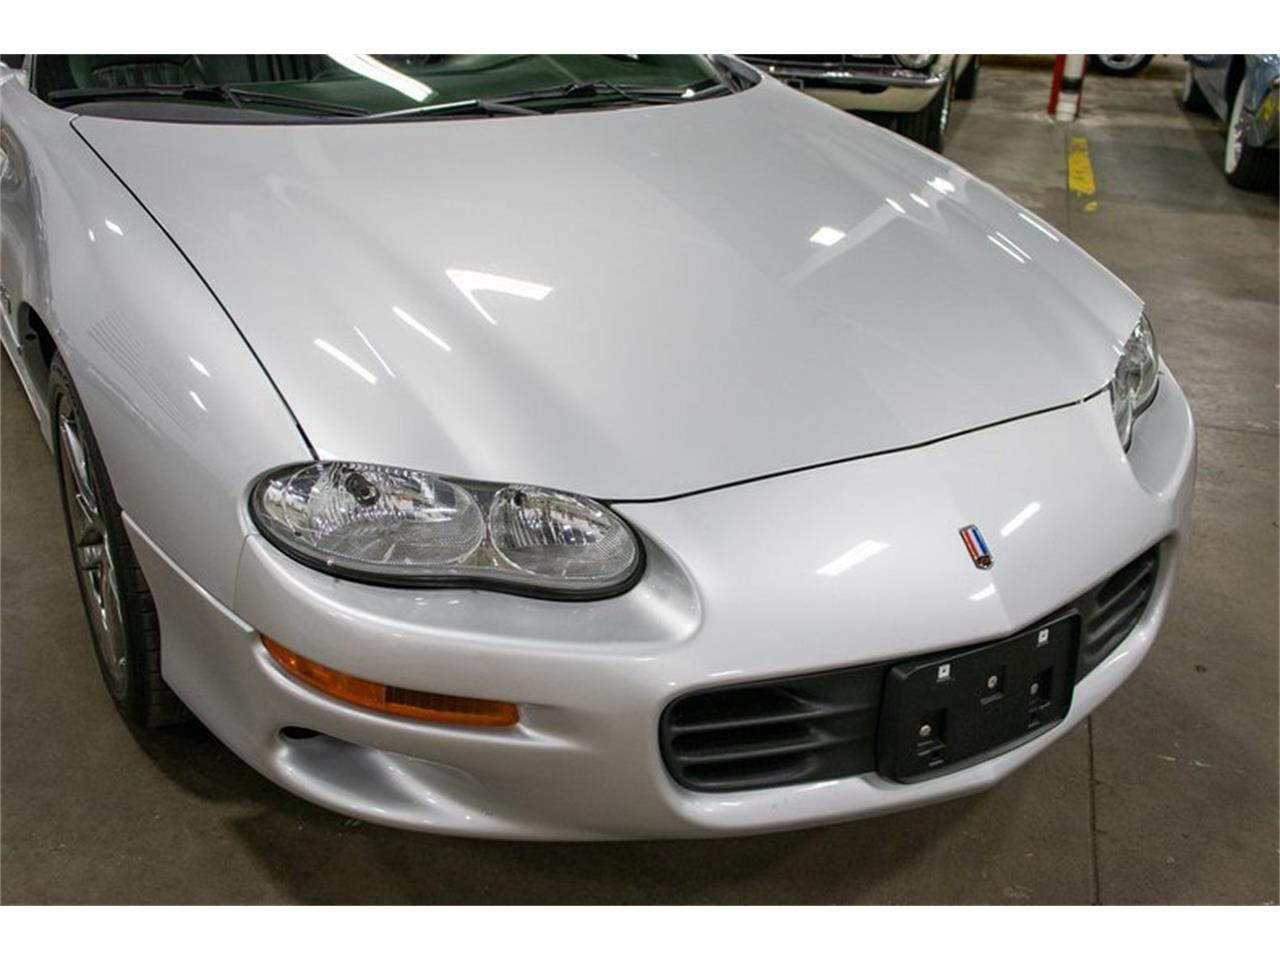 2002 Chevrolet Camaro (CC-1366016) for sale in Kentwood, Michigan